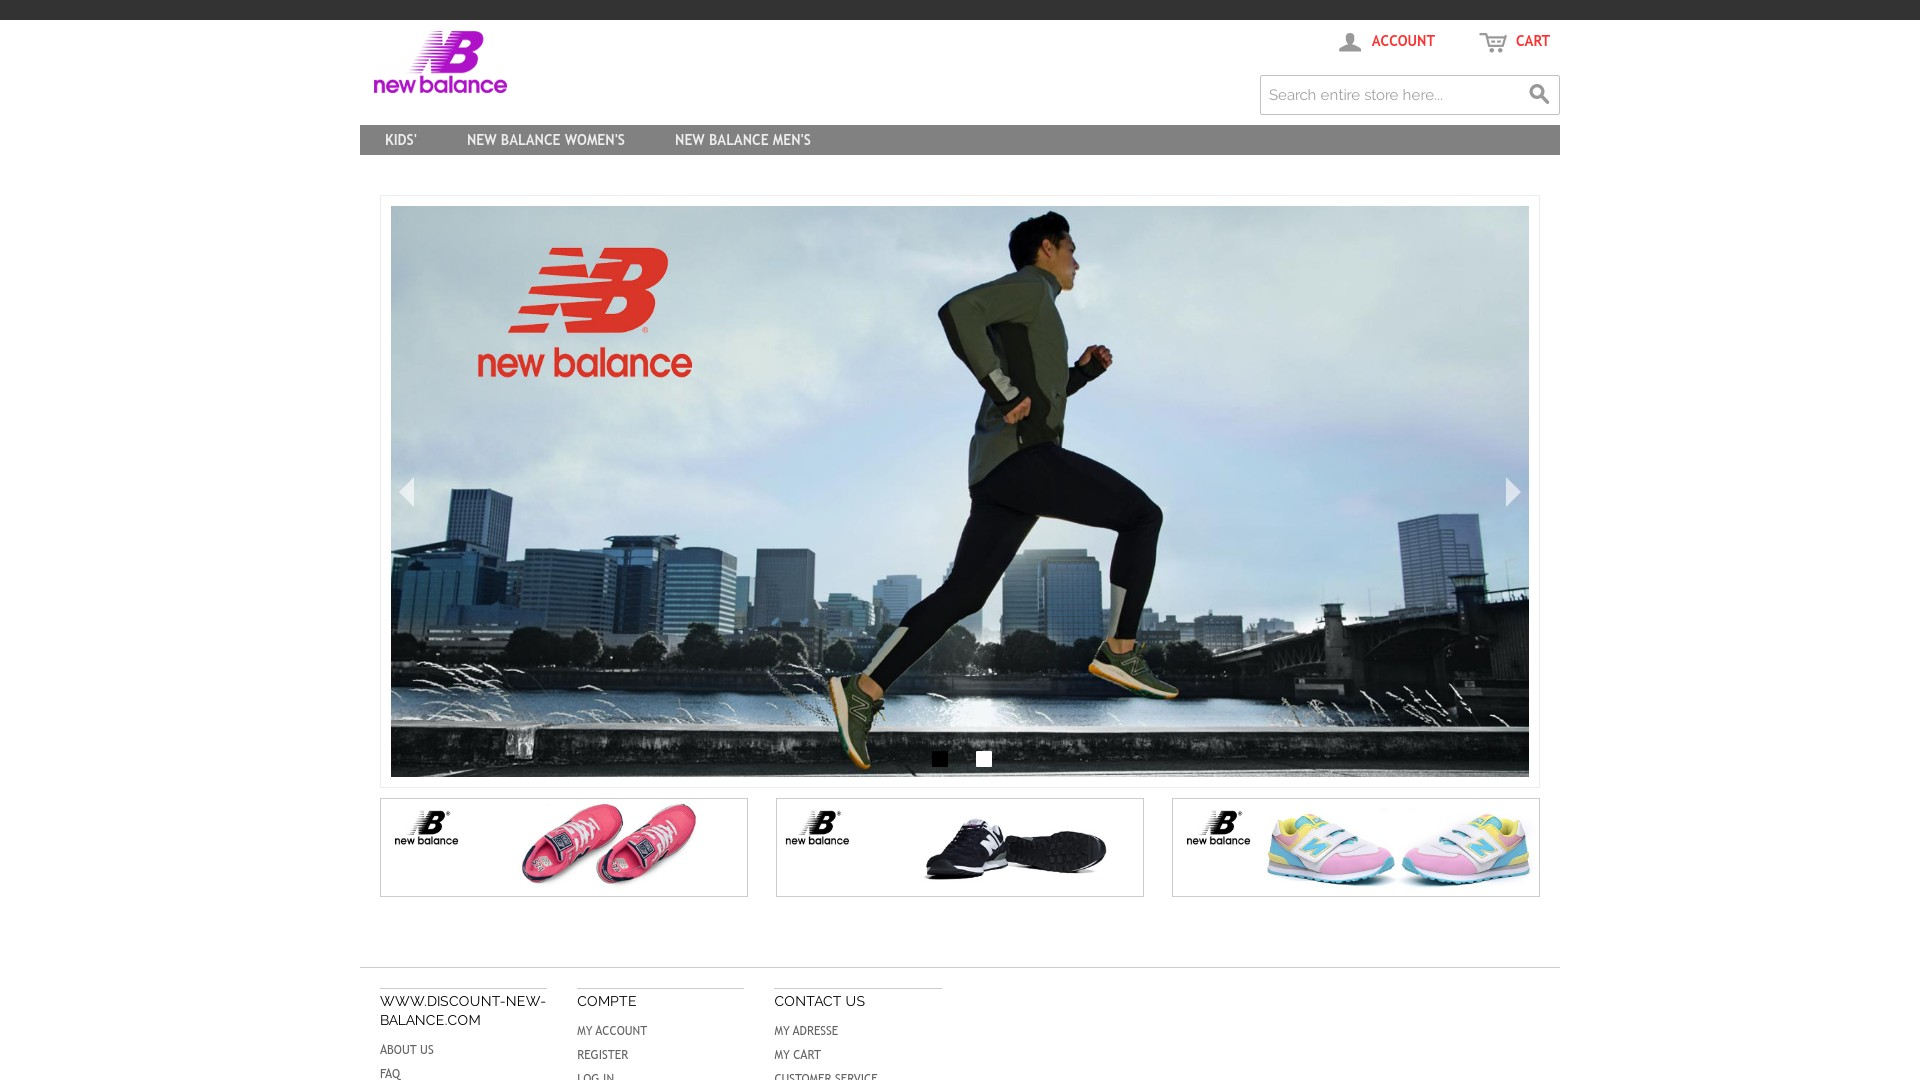 Is Discount-new-balance a Scam or is it Legit? Review of the Online Store